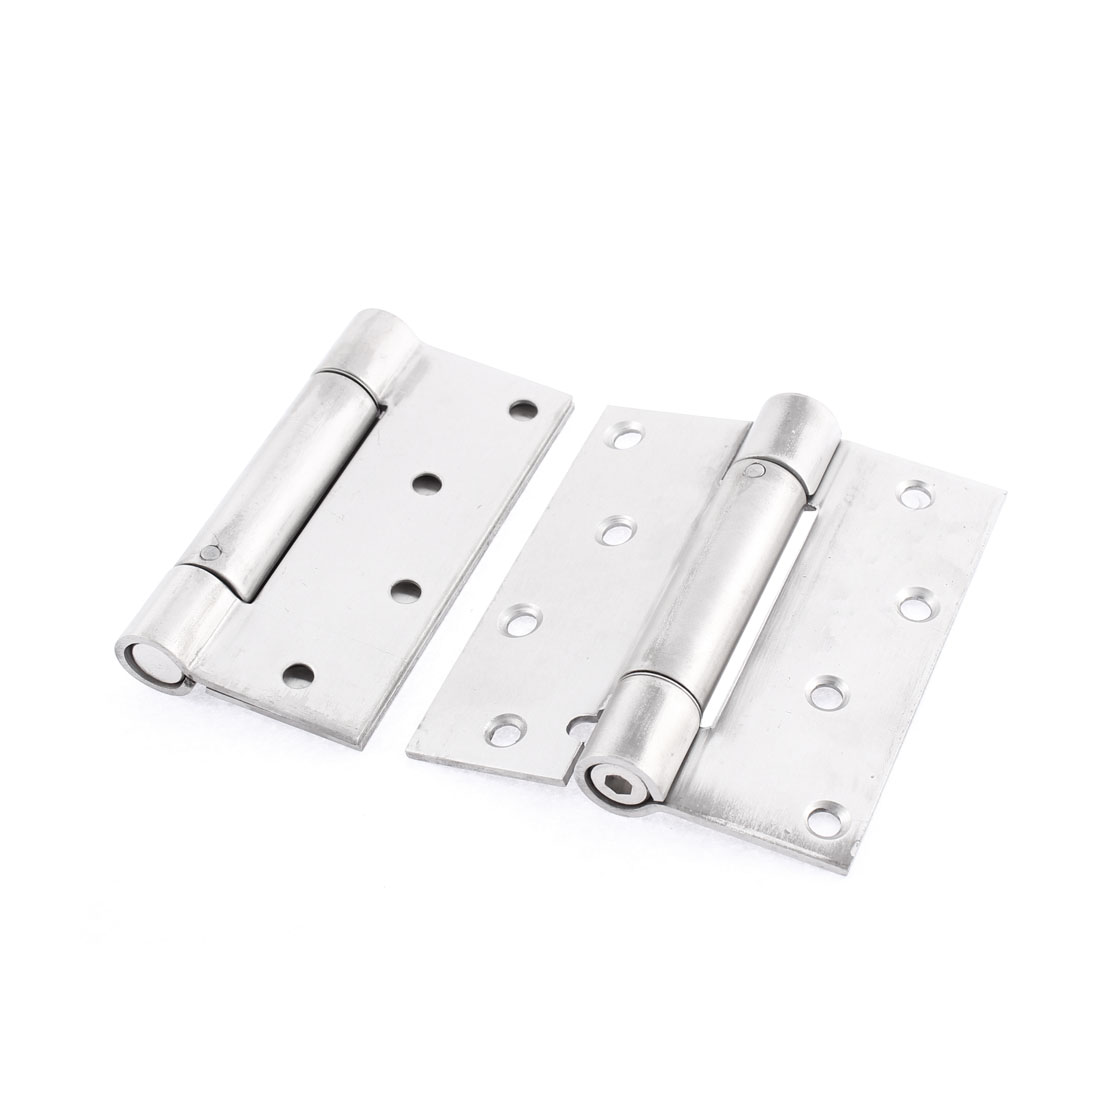 Hardware Door Butt Hinge Silver Tone 4 Inches Long 2Pcs